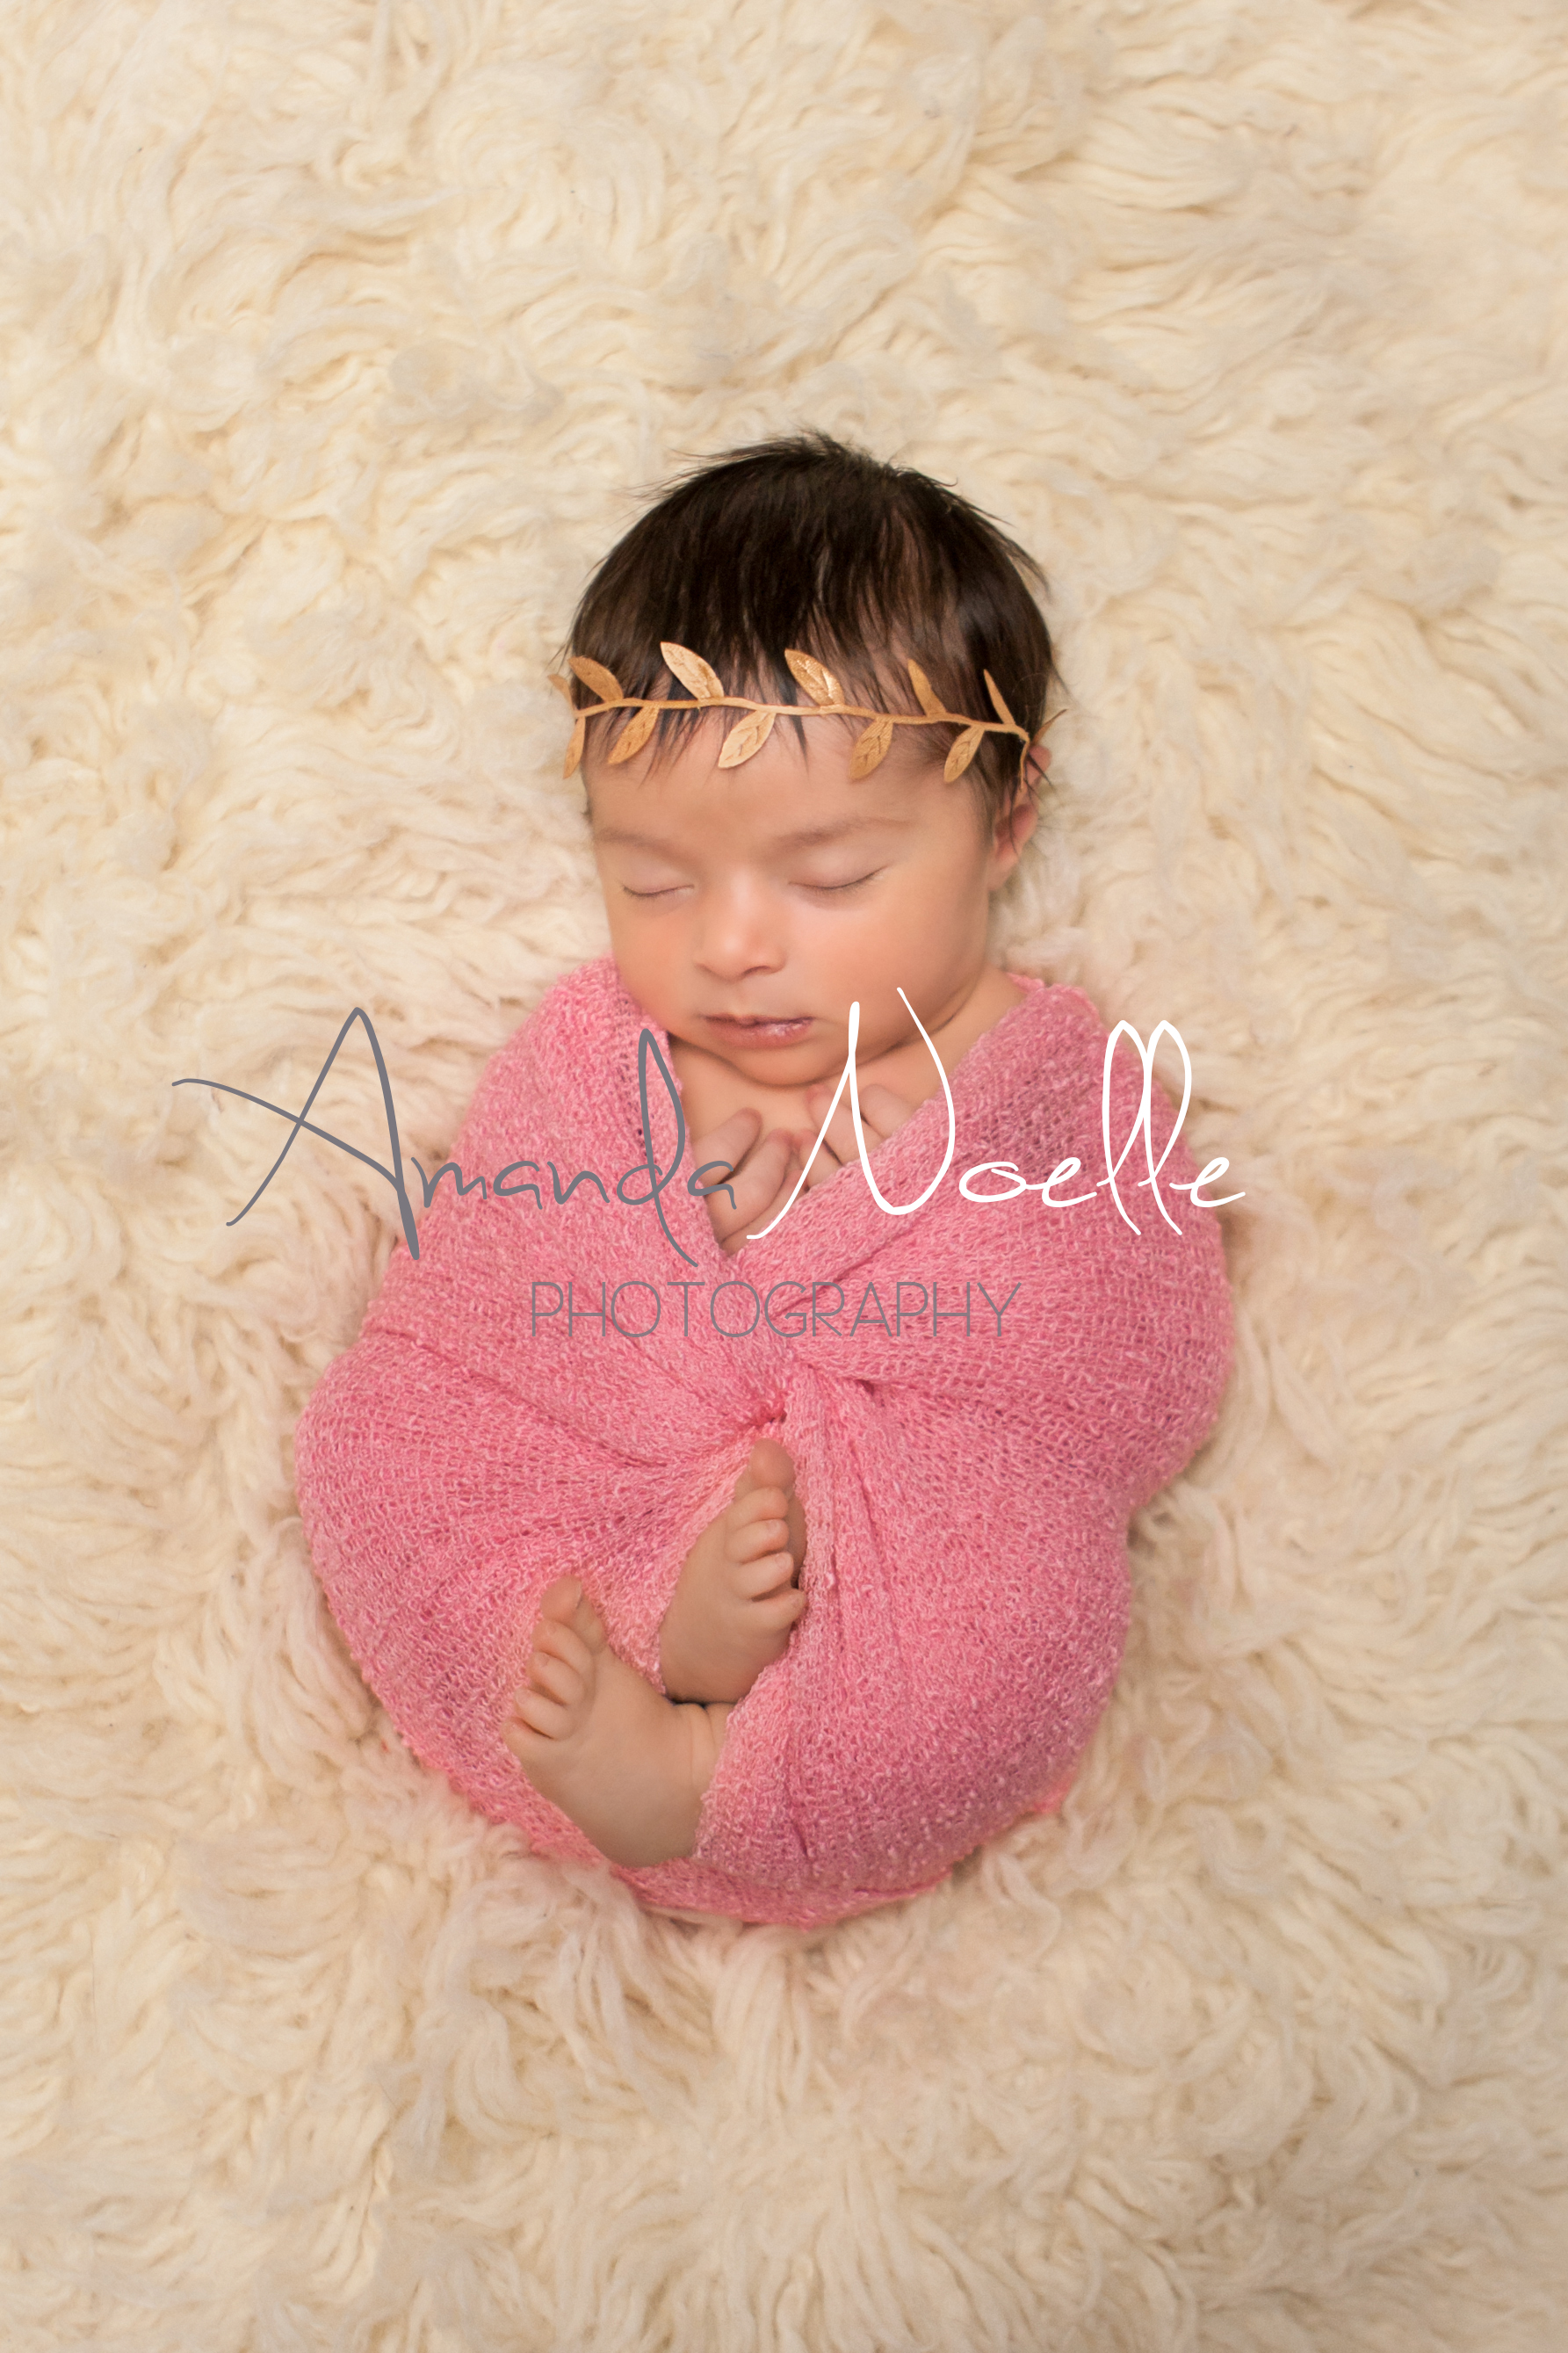 Newborn baby girl sleeping with gold leaf   headband wrapped in stretch knit pink wrap on cream creme flokati rug, Westchester, County New York Newborn Photographer, Amanda Noelle Photography.